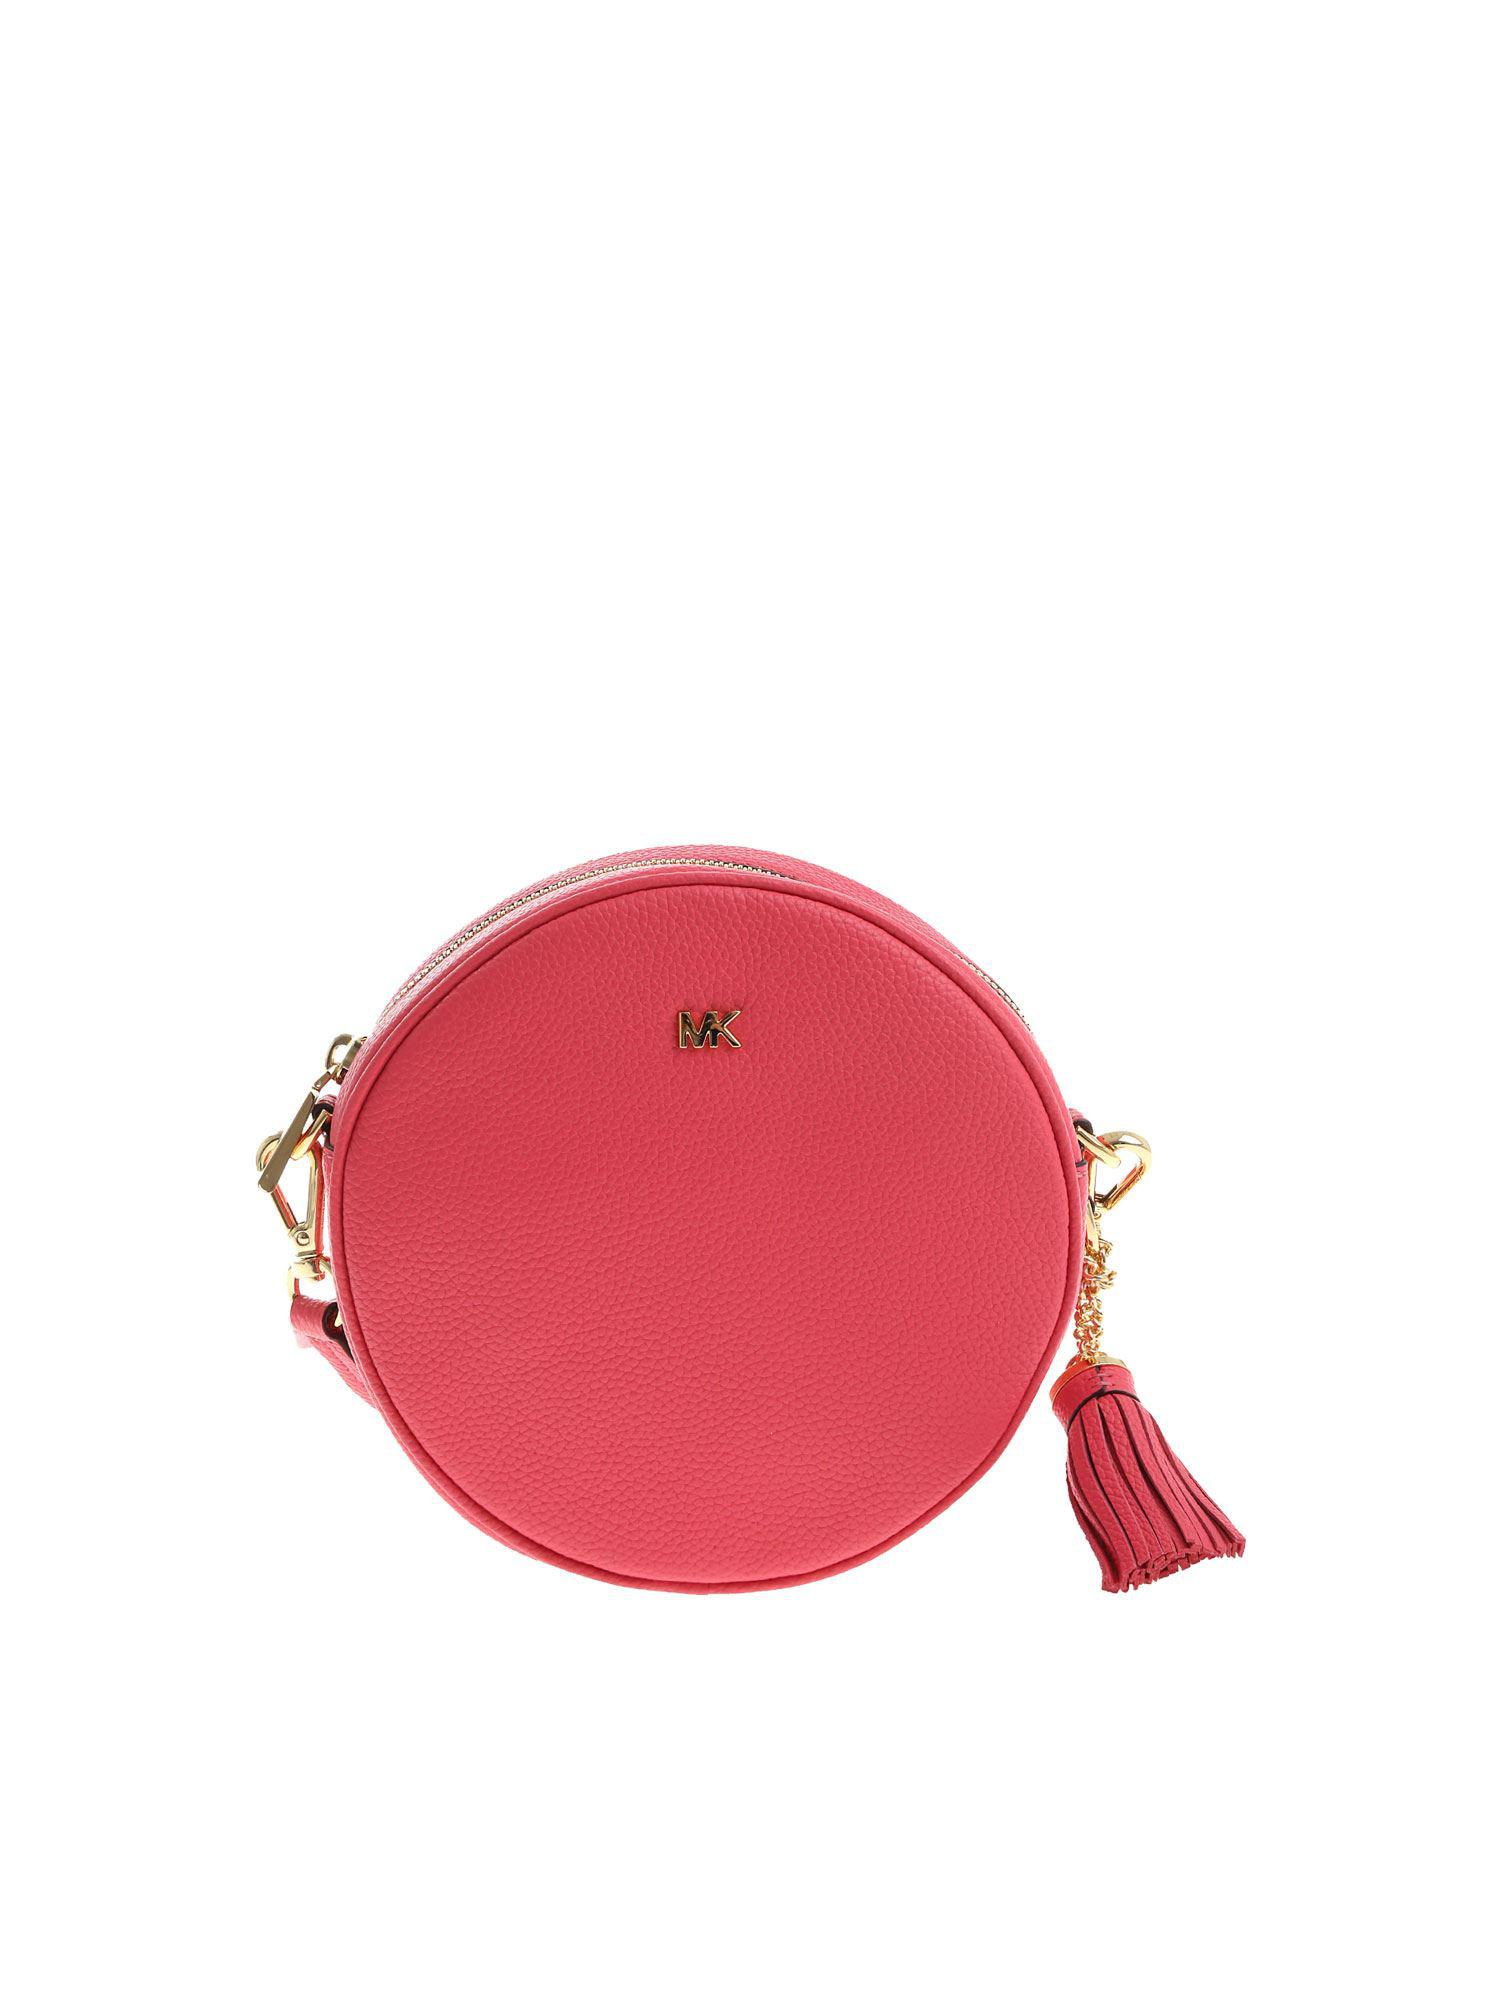 e9cd8aaa7c40 Lyst - Michael Kors Fuchsia Canteen Medium Bag With Front Logo in Pink